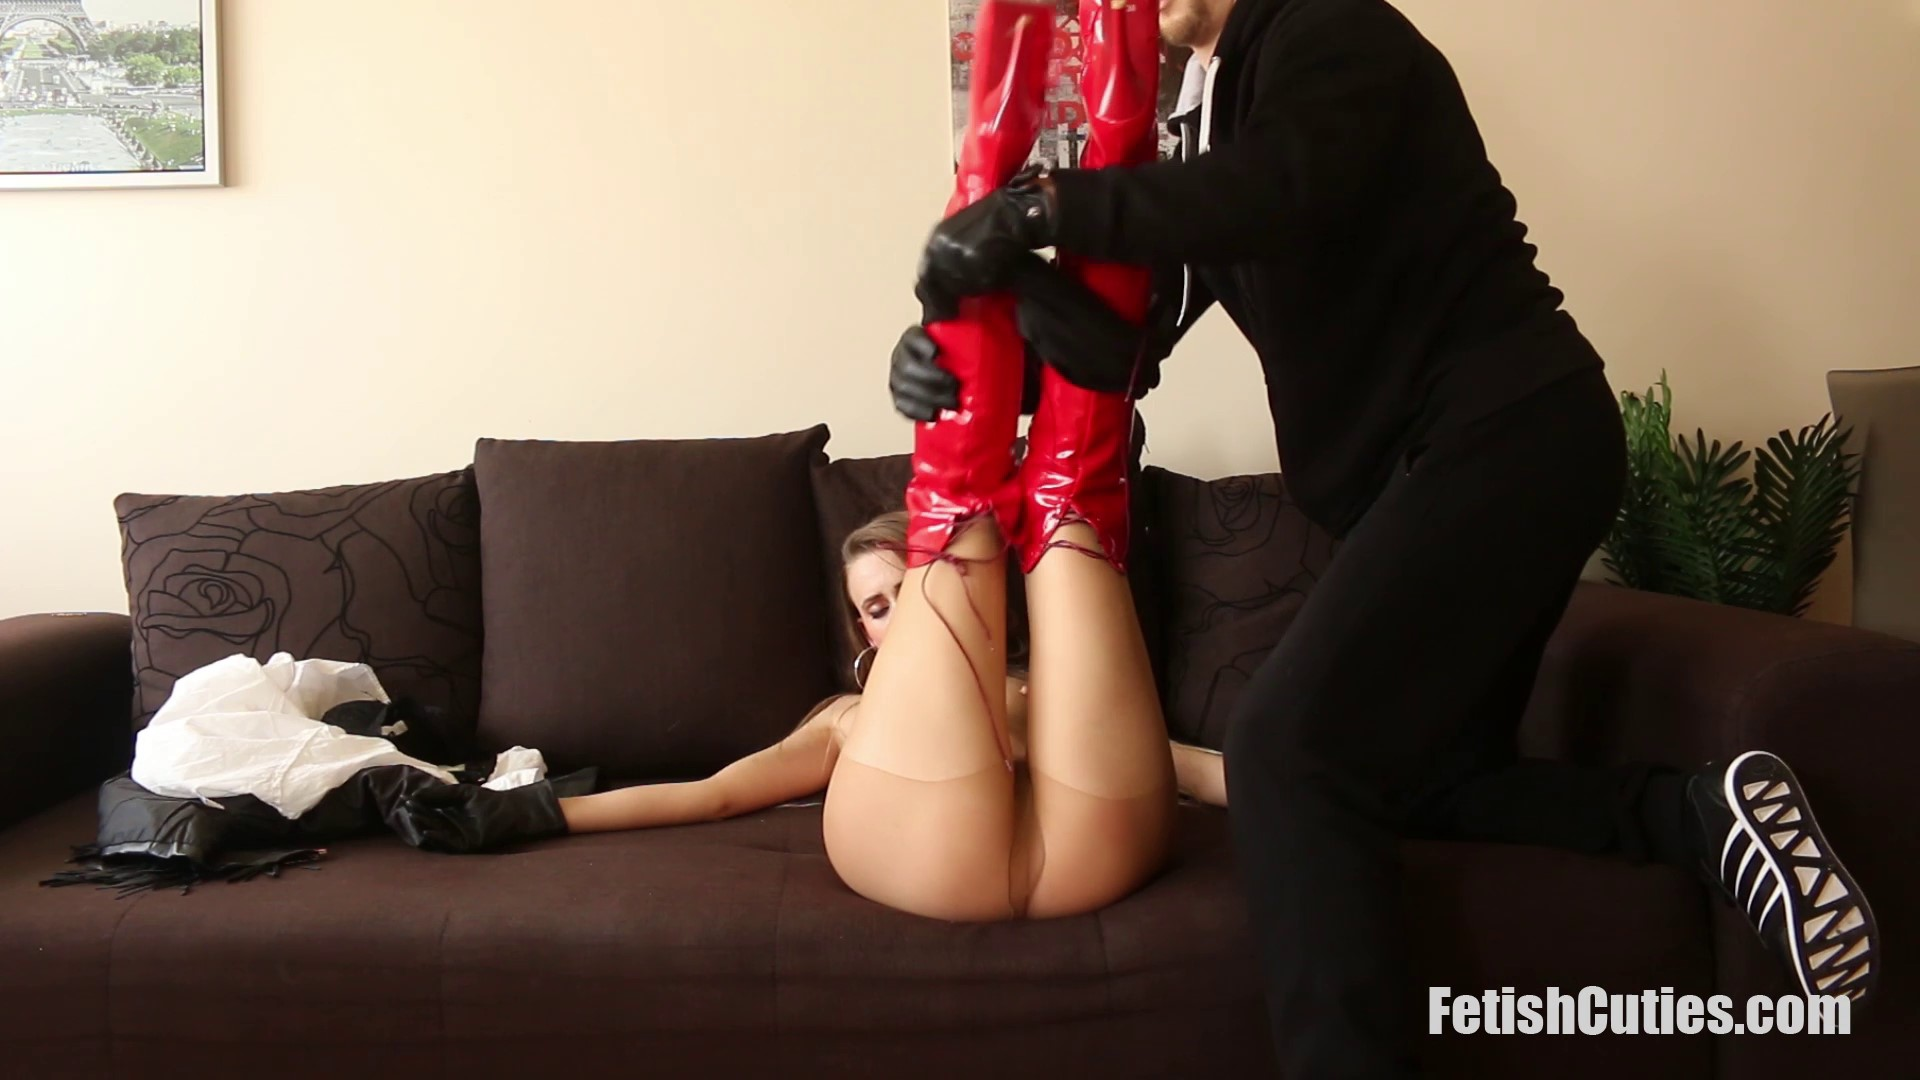 FETISH CUTIES Unsuspectedly Caught, Neck Chopped And Used For Pleasure (50)